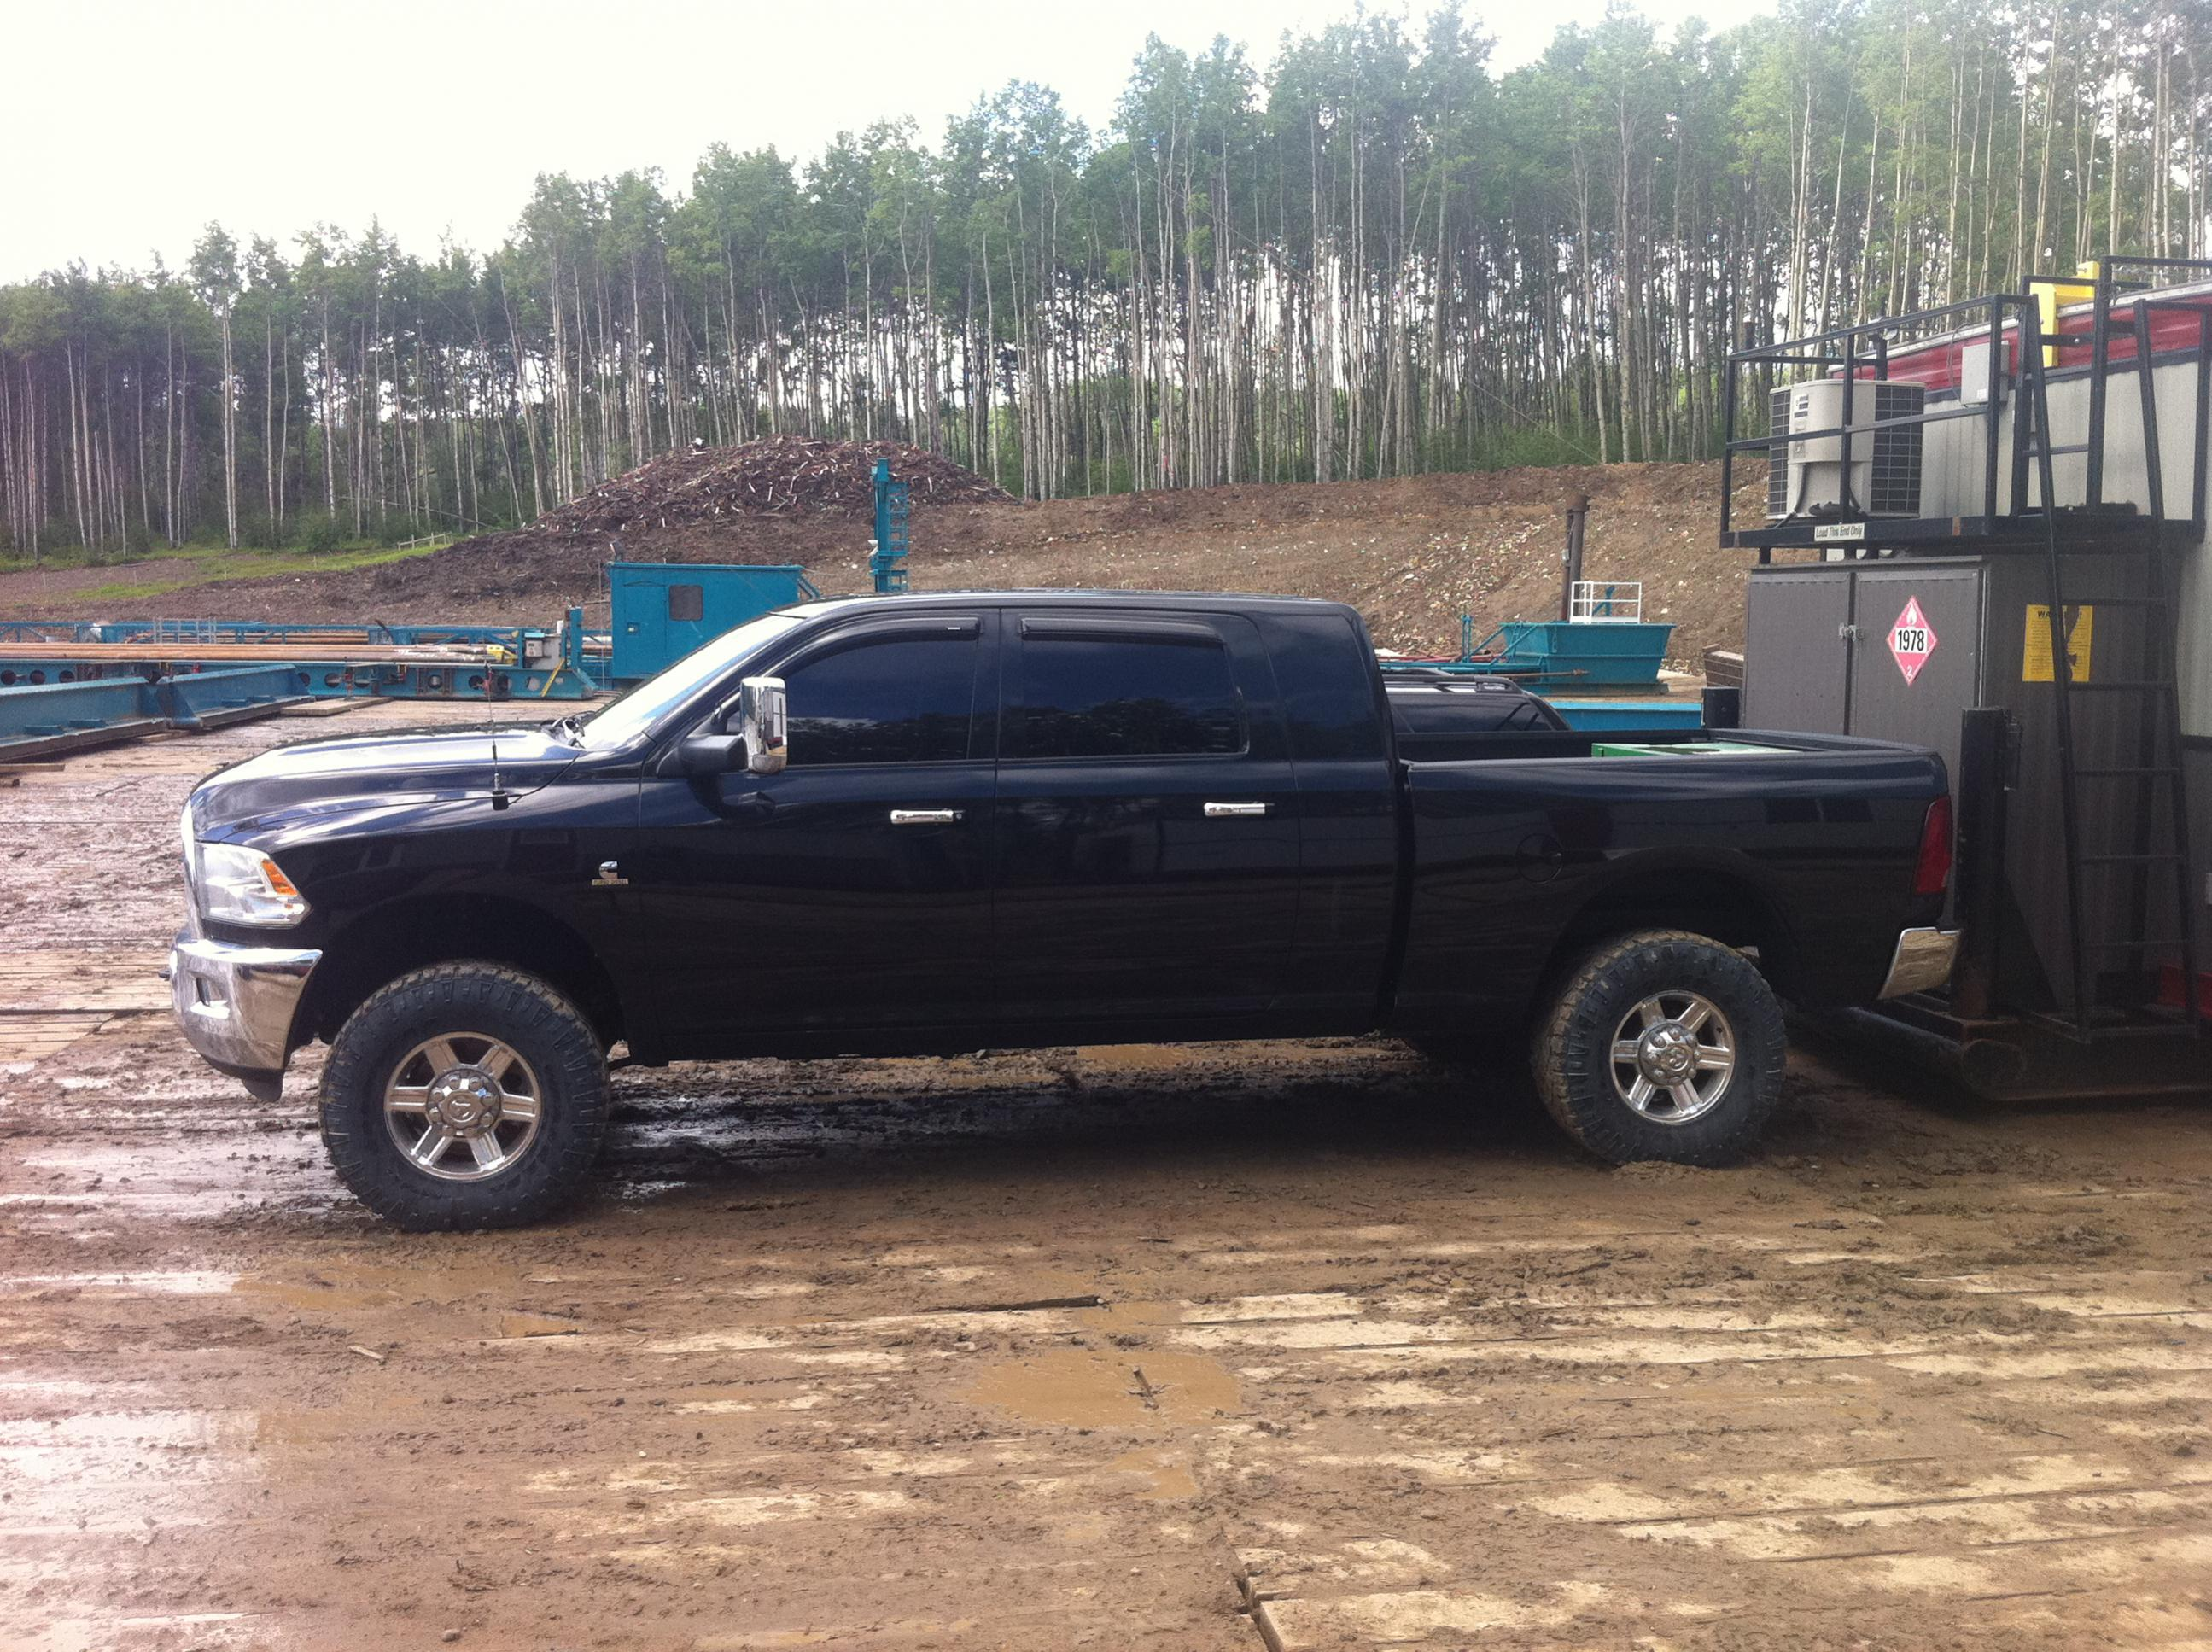 4th gen leveled 33's or 35's pics please - Page 3 - Dodge ...